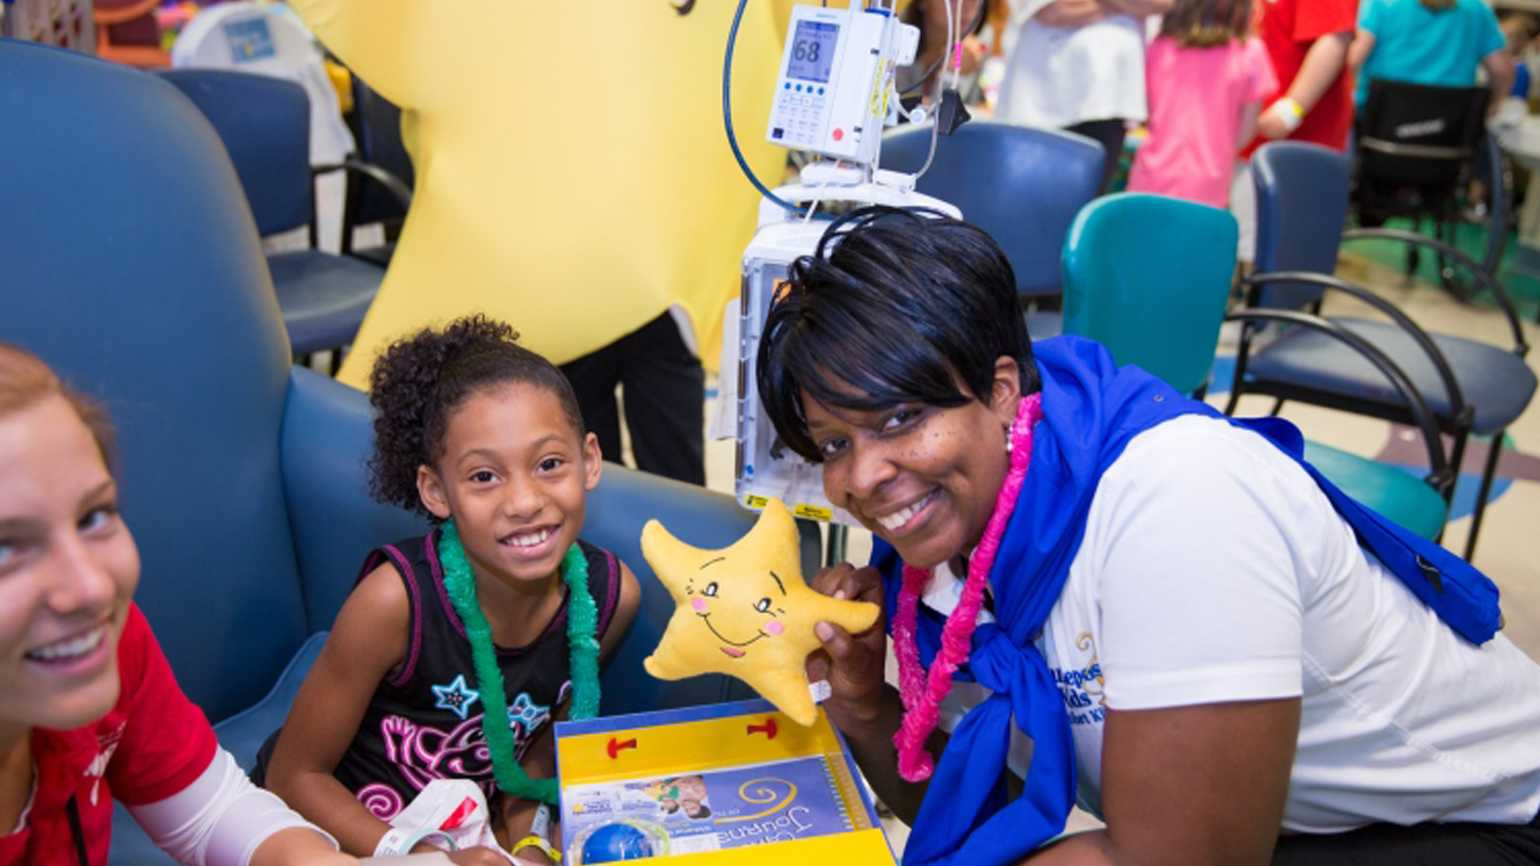 Guideposts Outreach gives hope and comfort to tens of thousands of kids in hospitals each year